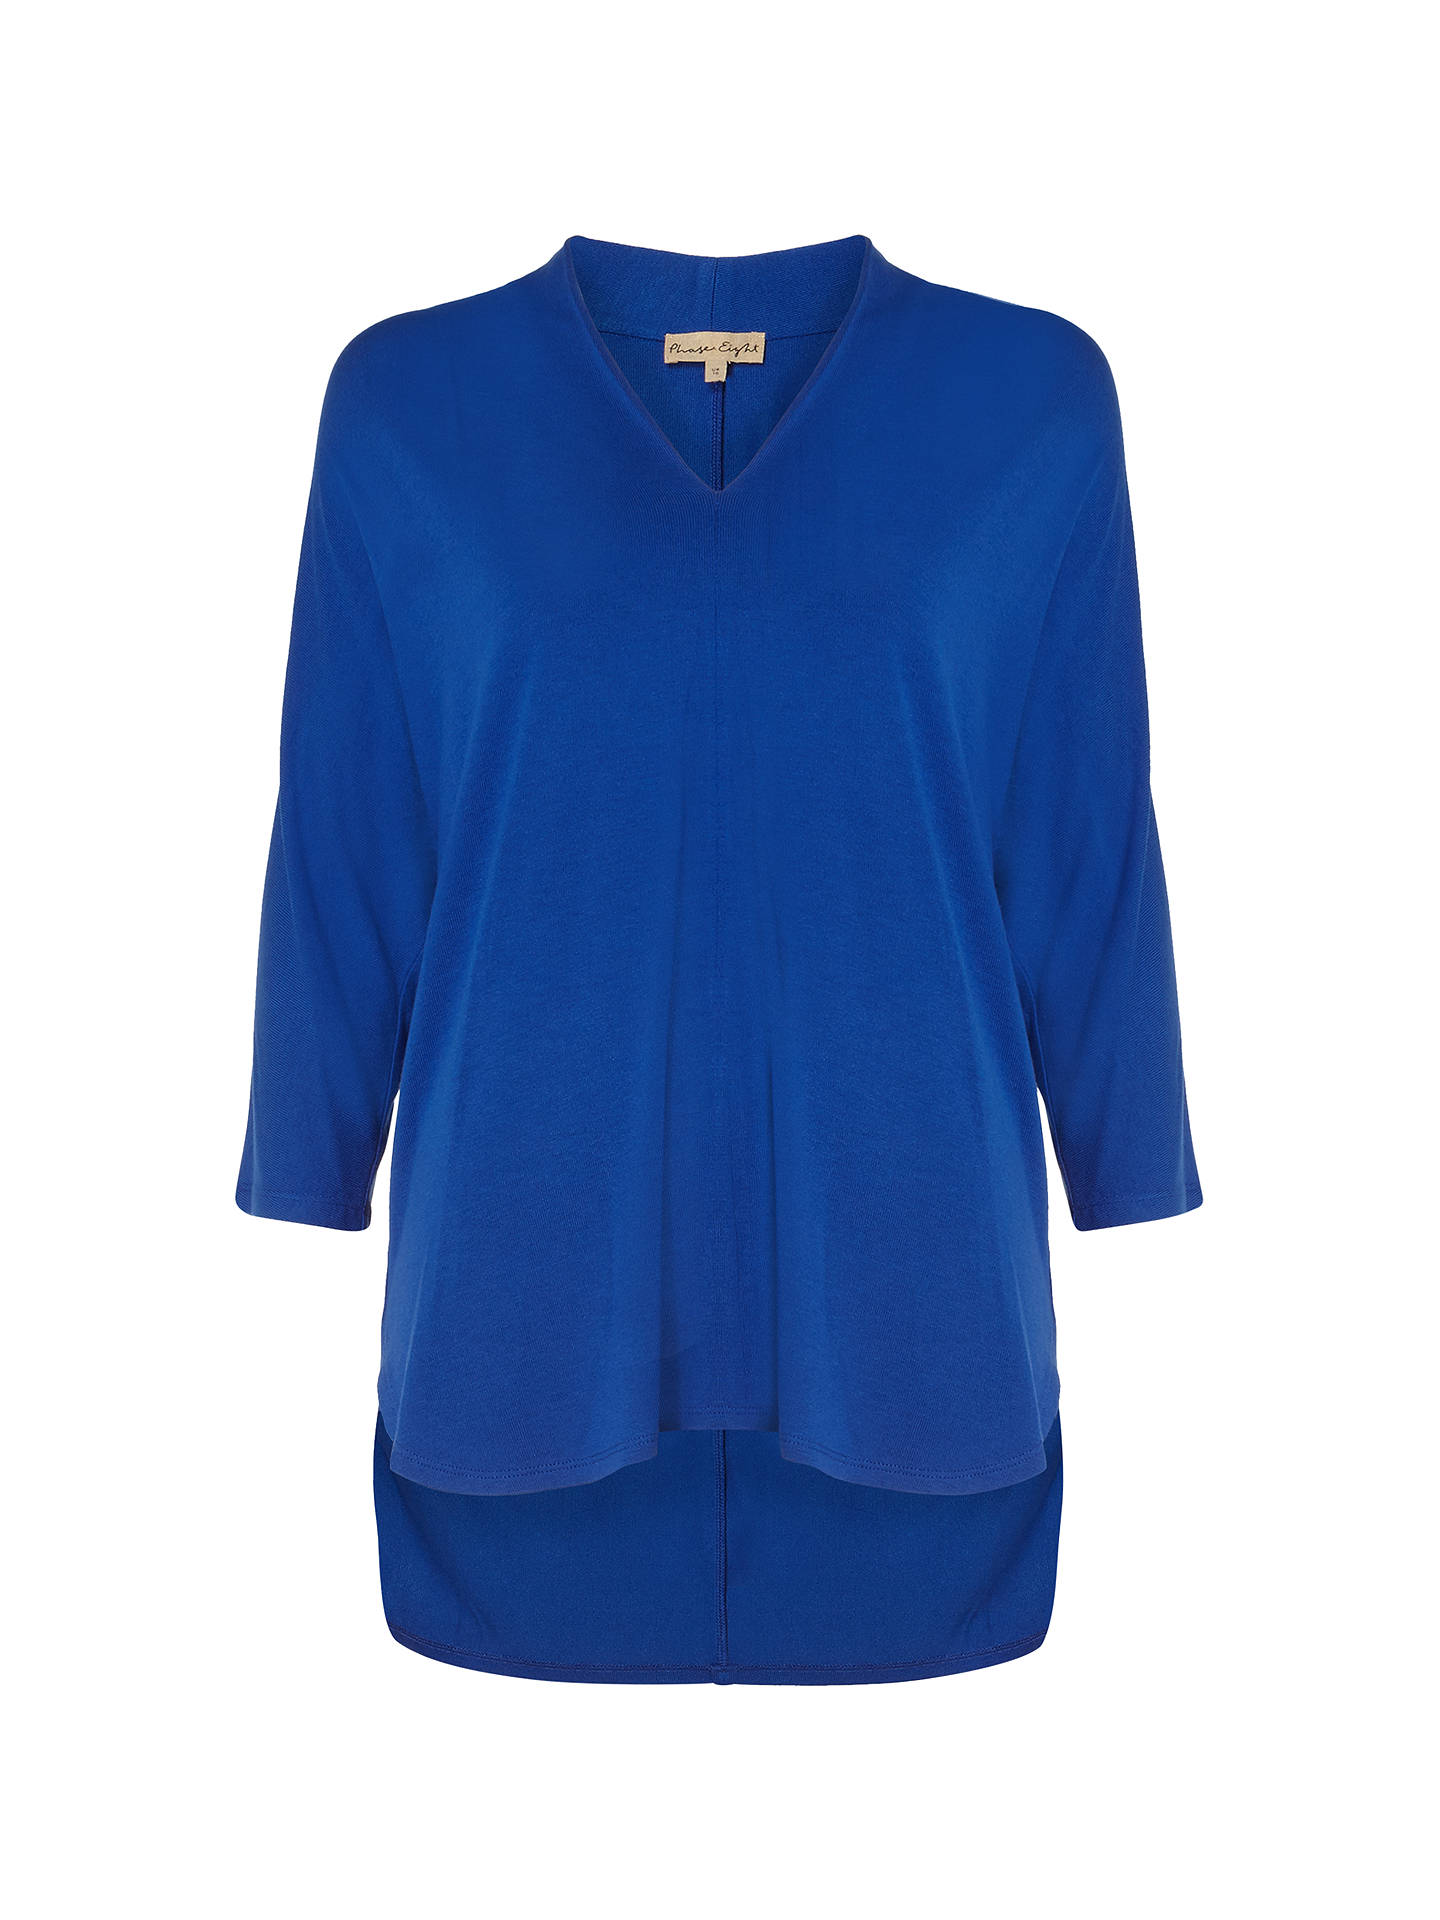 362f81d60035 Buy Phase Eight Vanessa Oversized V Neck Top, Lapis Blue, 8 Online at  johnlewis ...